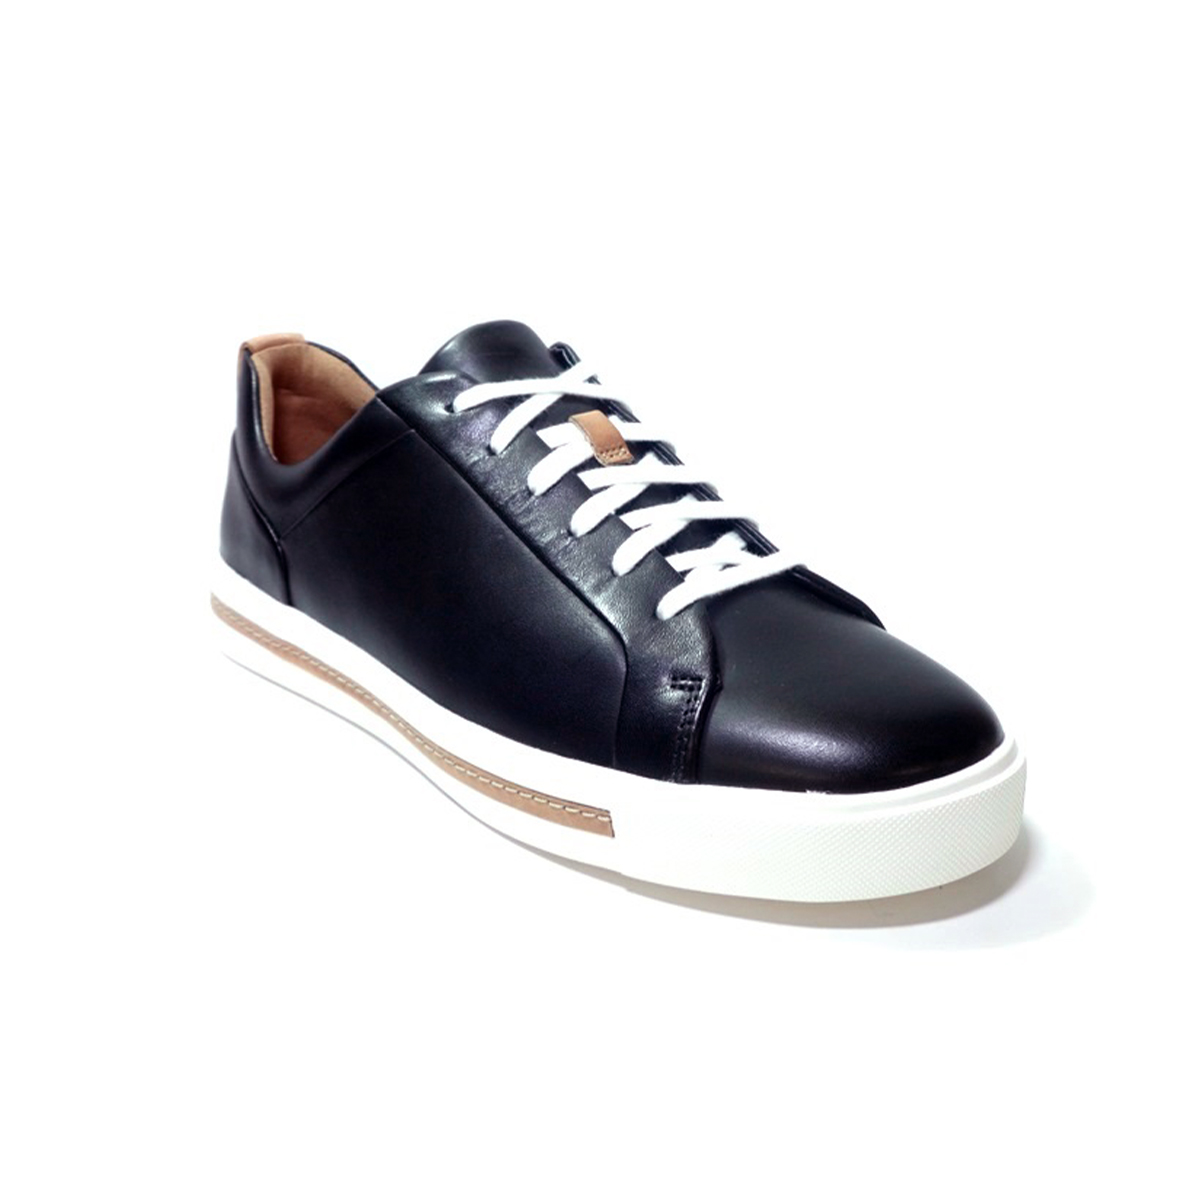 Damenschuhe LADIES CLARKS UN MAUI LACE UNSTRUCTURED LACE UP